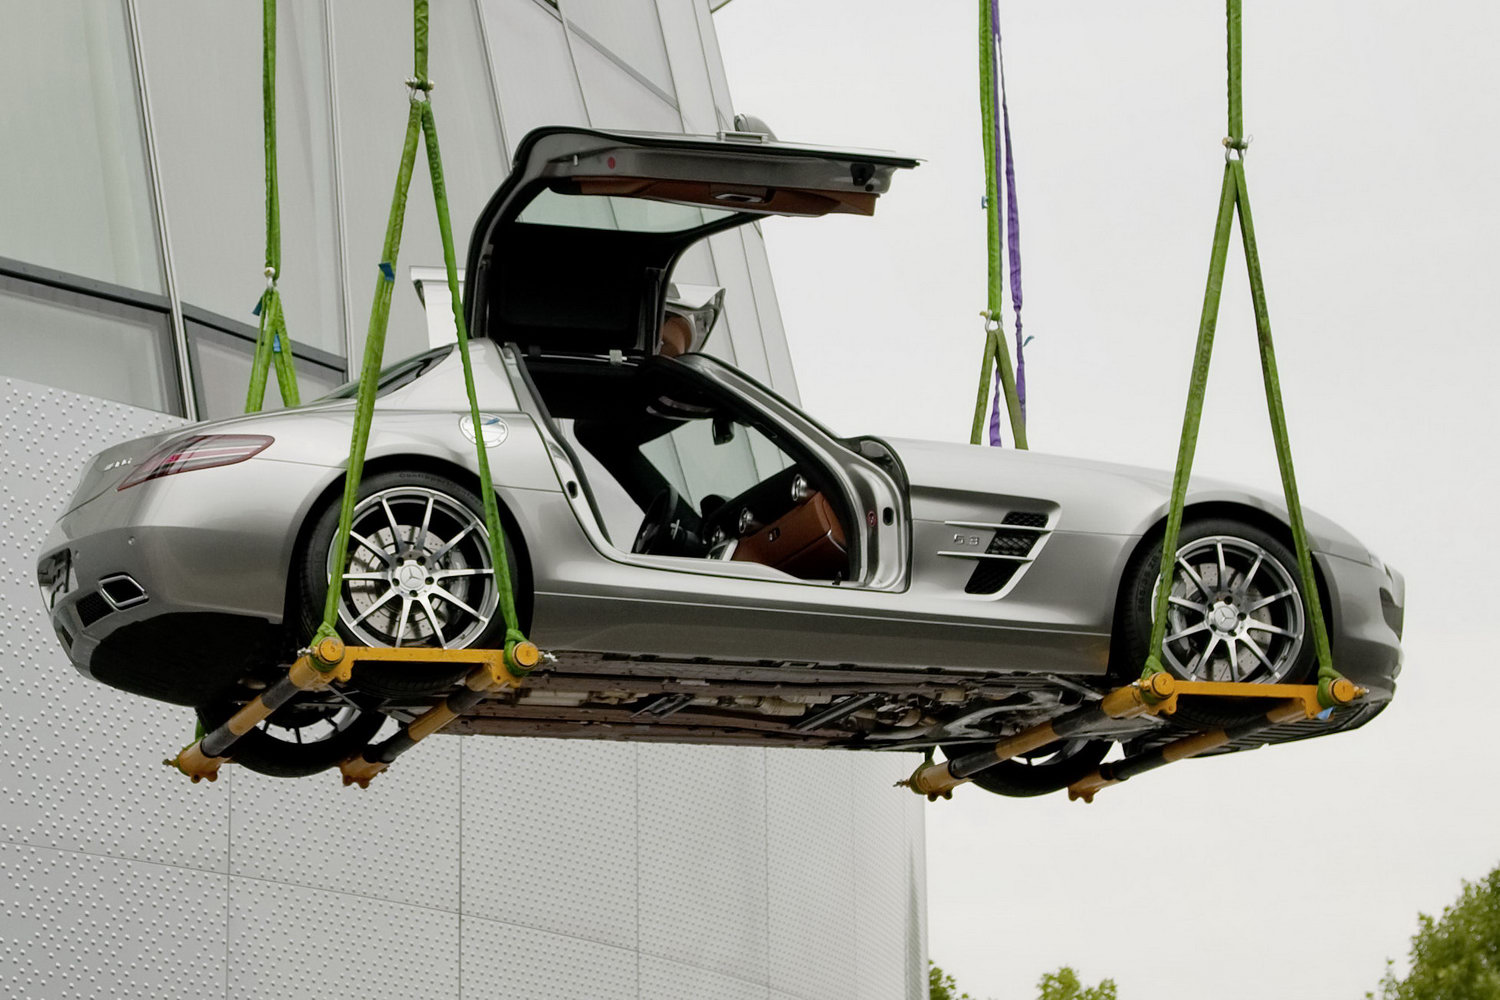 la mercedes sls amg portes papillon s 39 envole pour de vrai. Black Bedroom Furniture Sets. Home Design Ideas